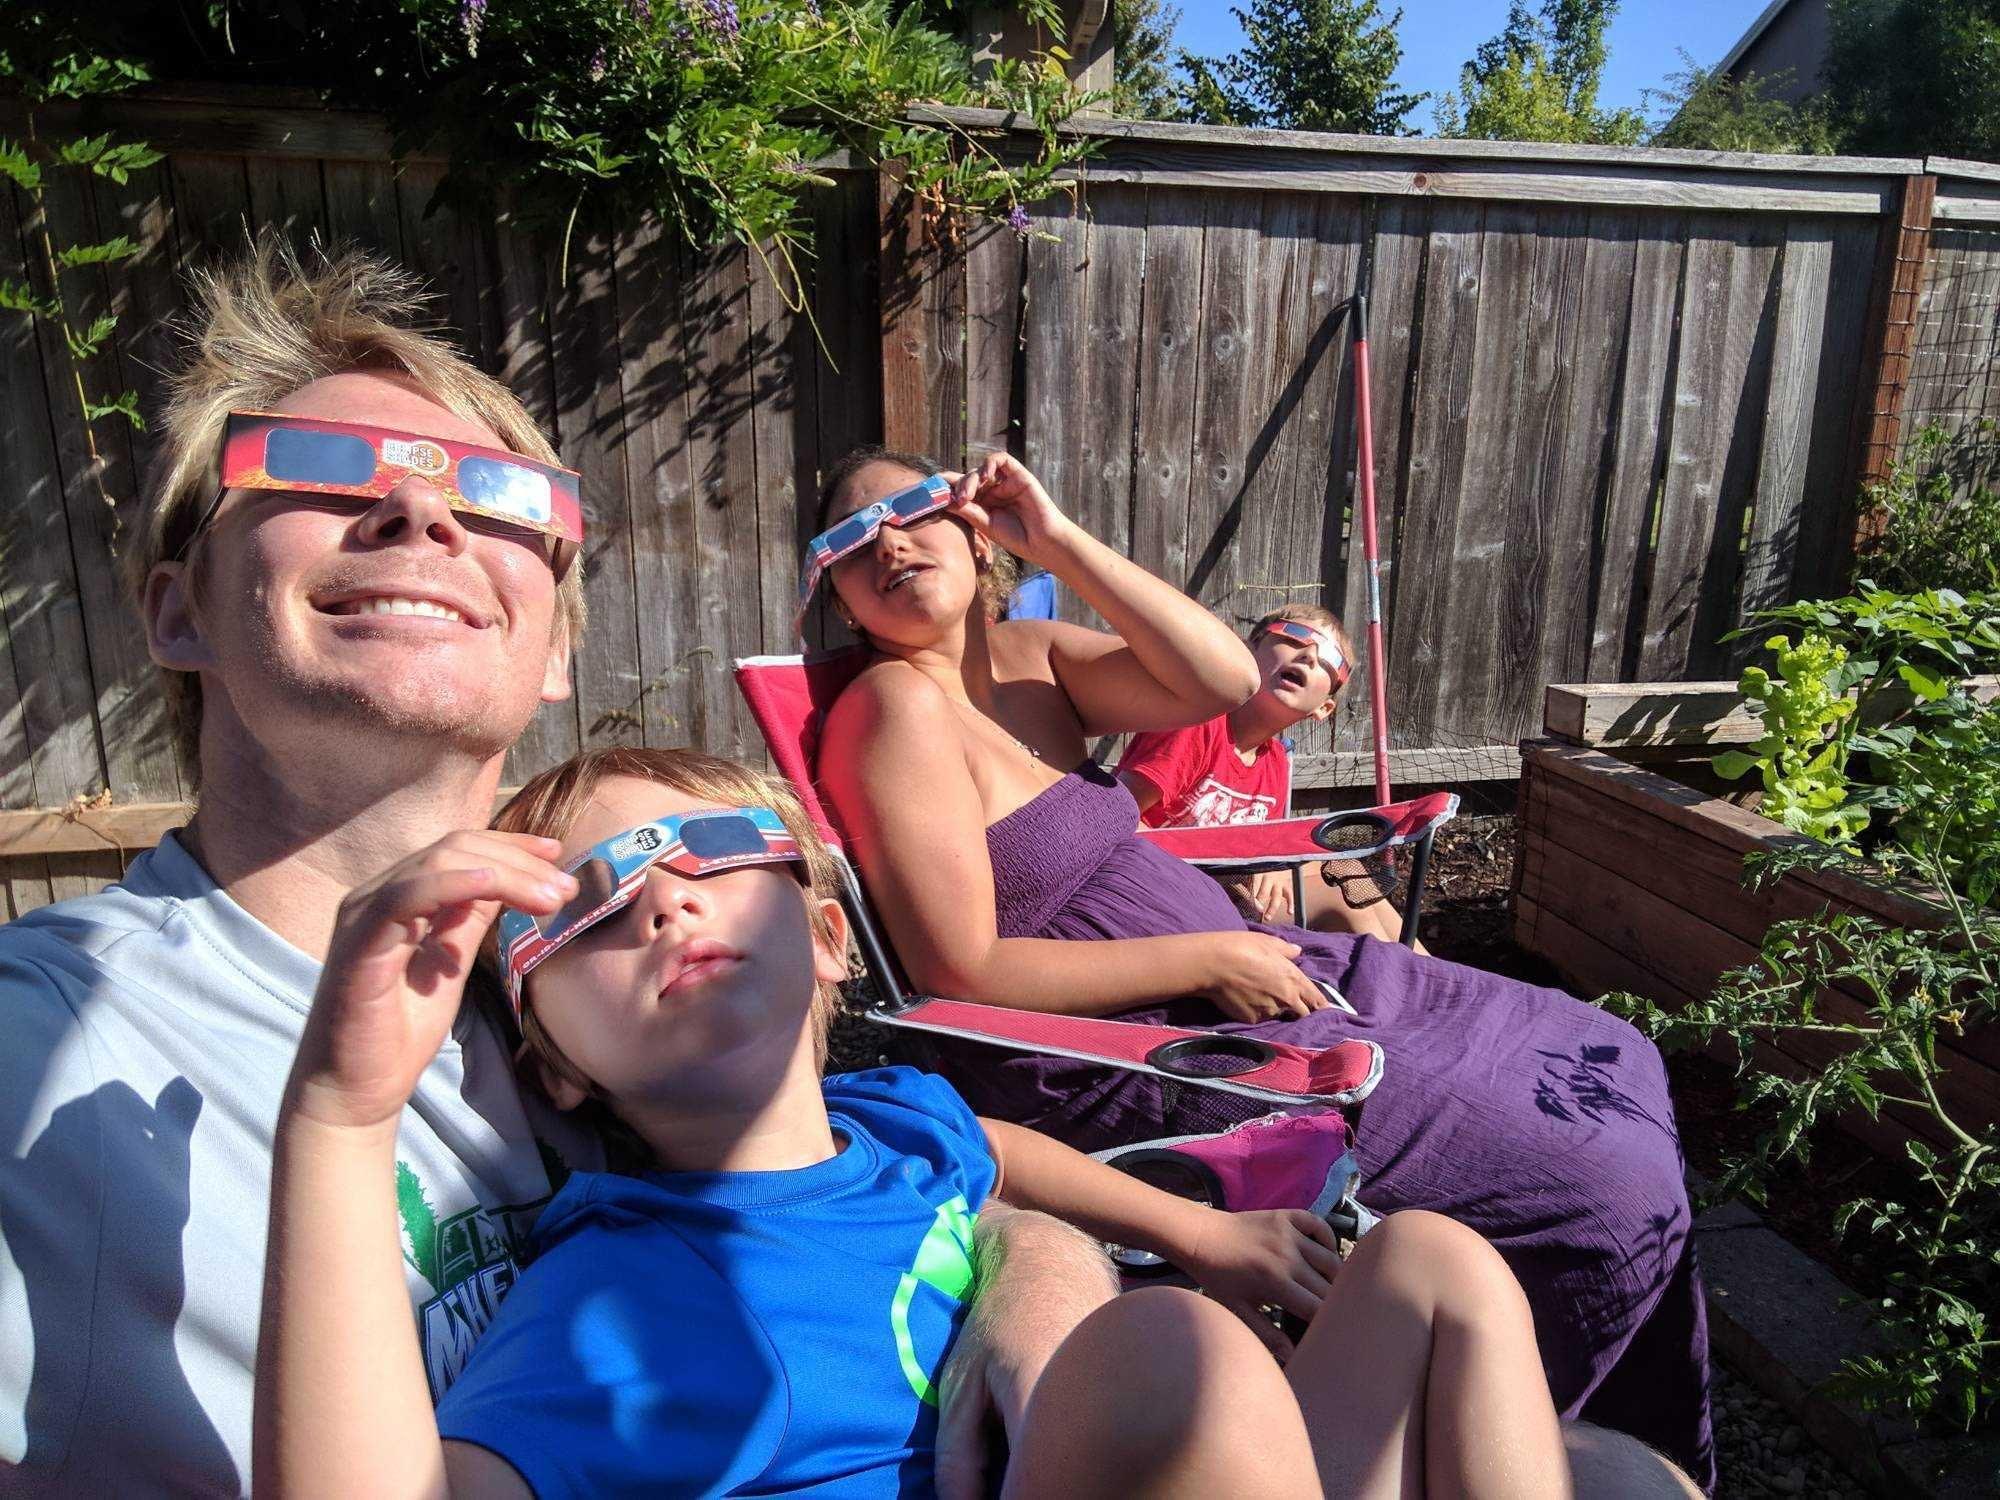 zeth watching solar eclipse with family